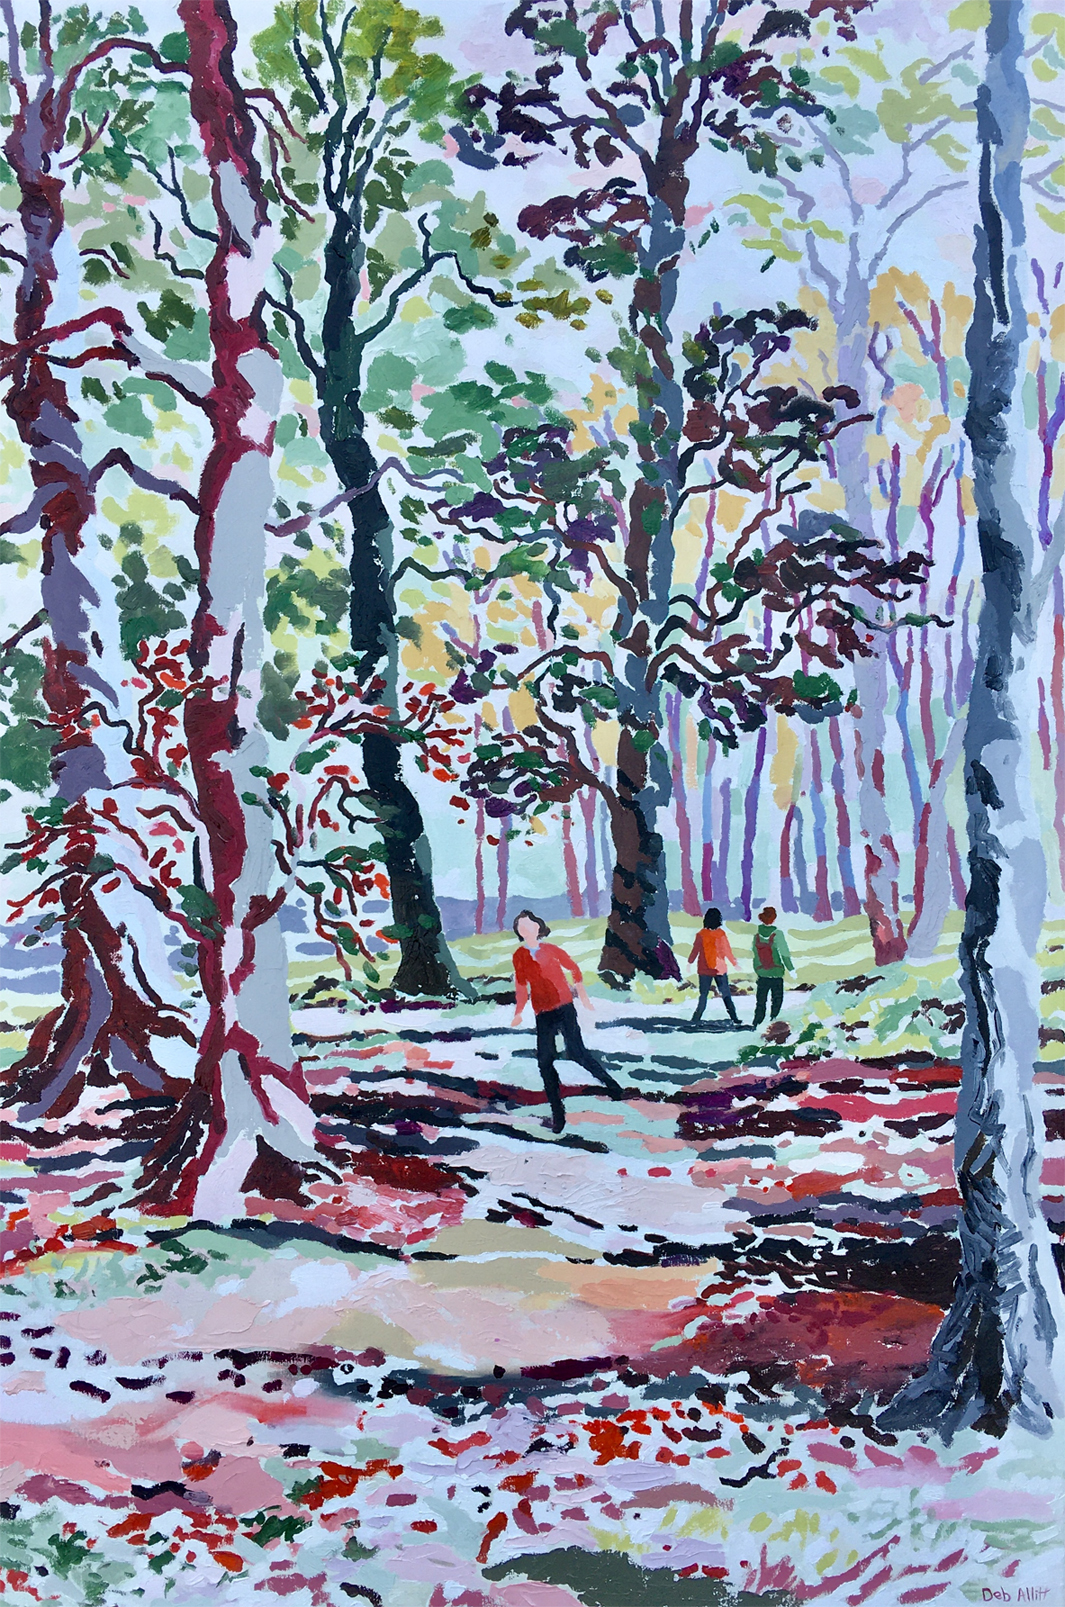 Walking in Autumn Woods, Kedleston Park. Oil on canvas. 120 x 80 cm